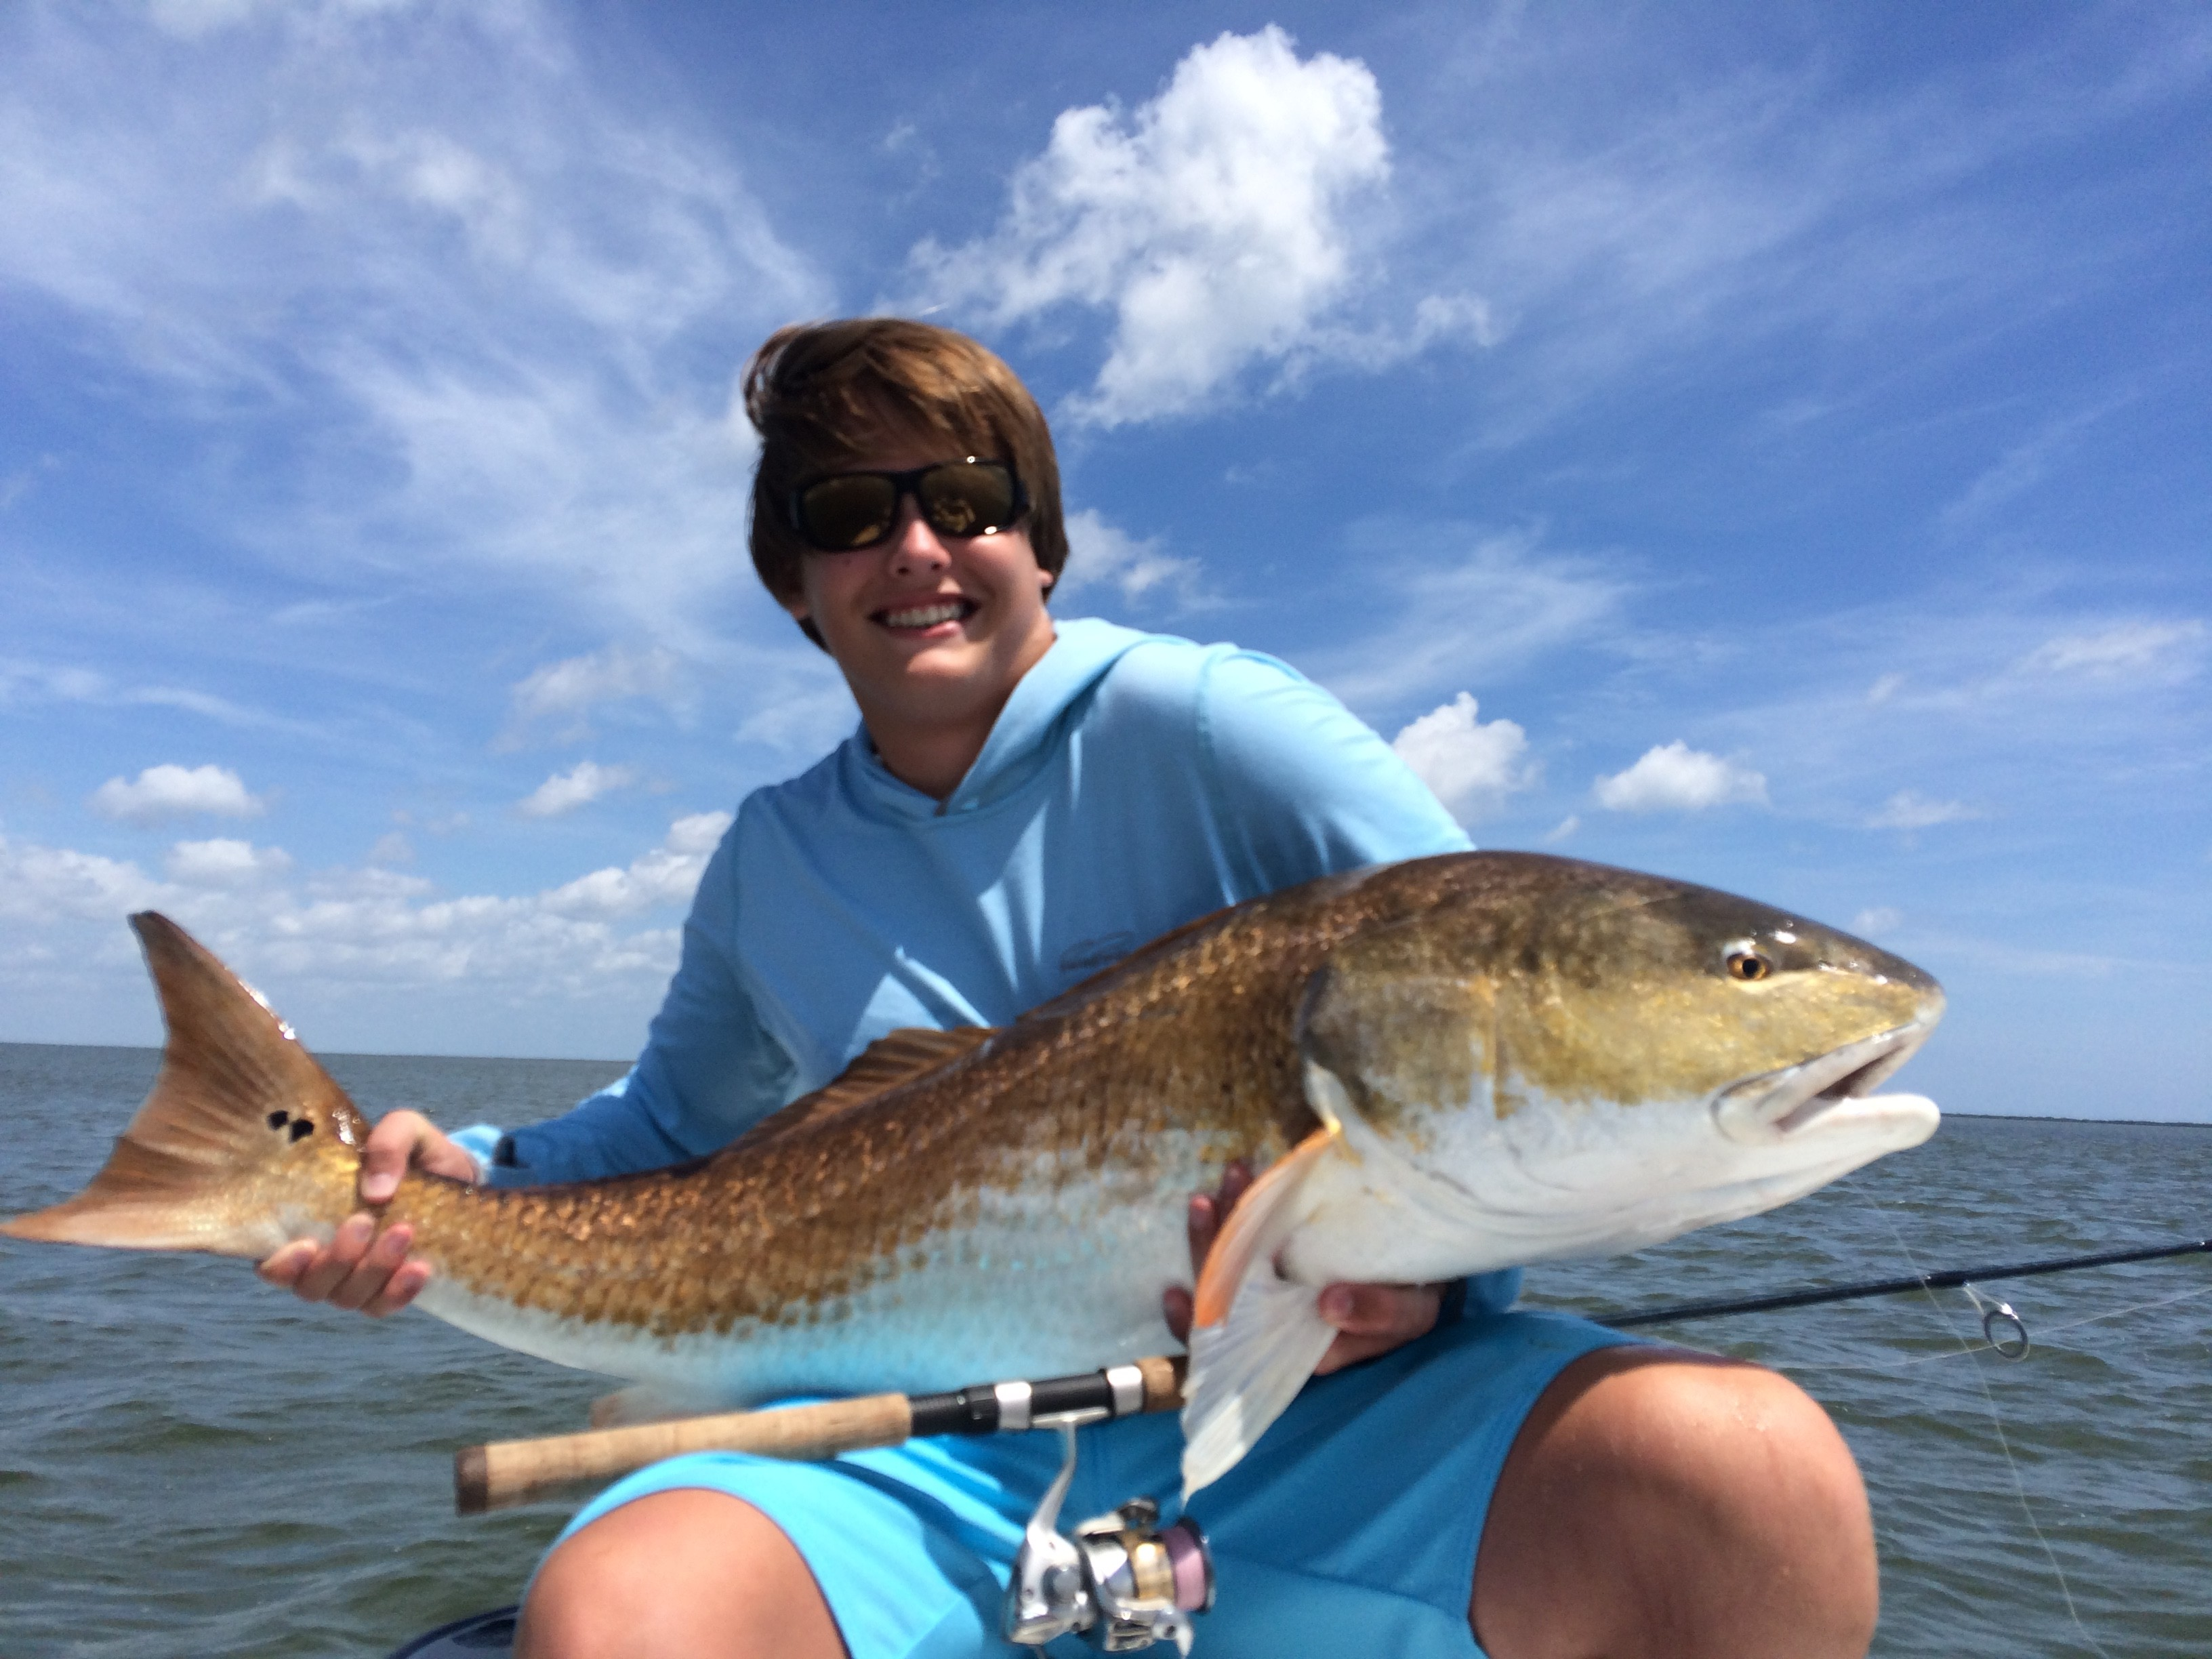 New smyrna beach summer fishing report for New smyrna beach fishing report